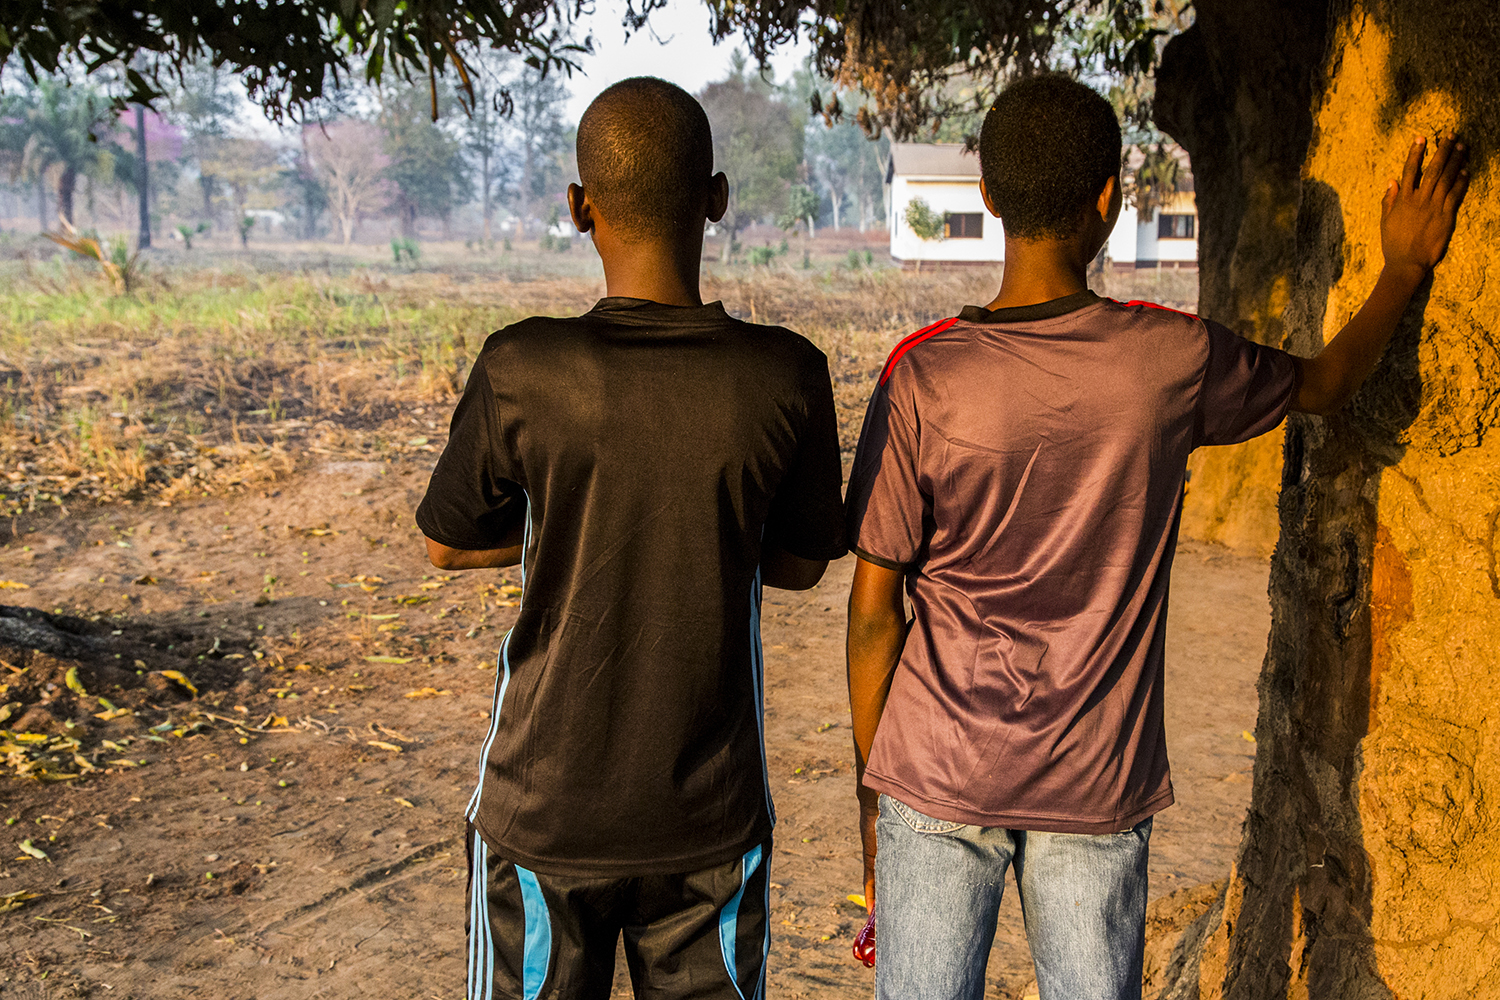 Two teenage boys—who were recruited as child soldiers in 2013 by a mainly Muslim coalition of rebel groups known as Séléka—meet on the outskirts of the rebel-held town of Kaga-Bandoro in northern Central African Republic on Jan. 22, 2018, as part of UNICEF-led efforts to support vulnerable children and train them with new skills.